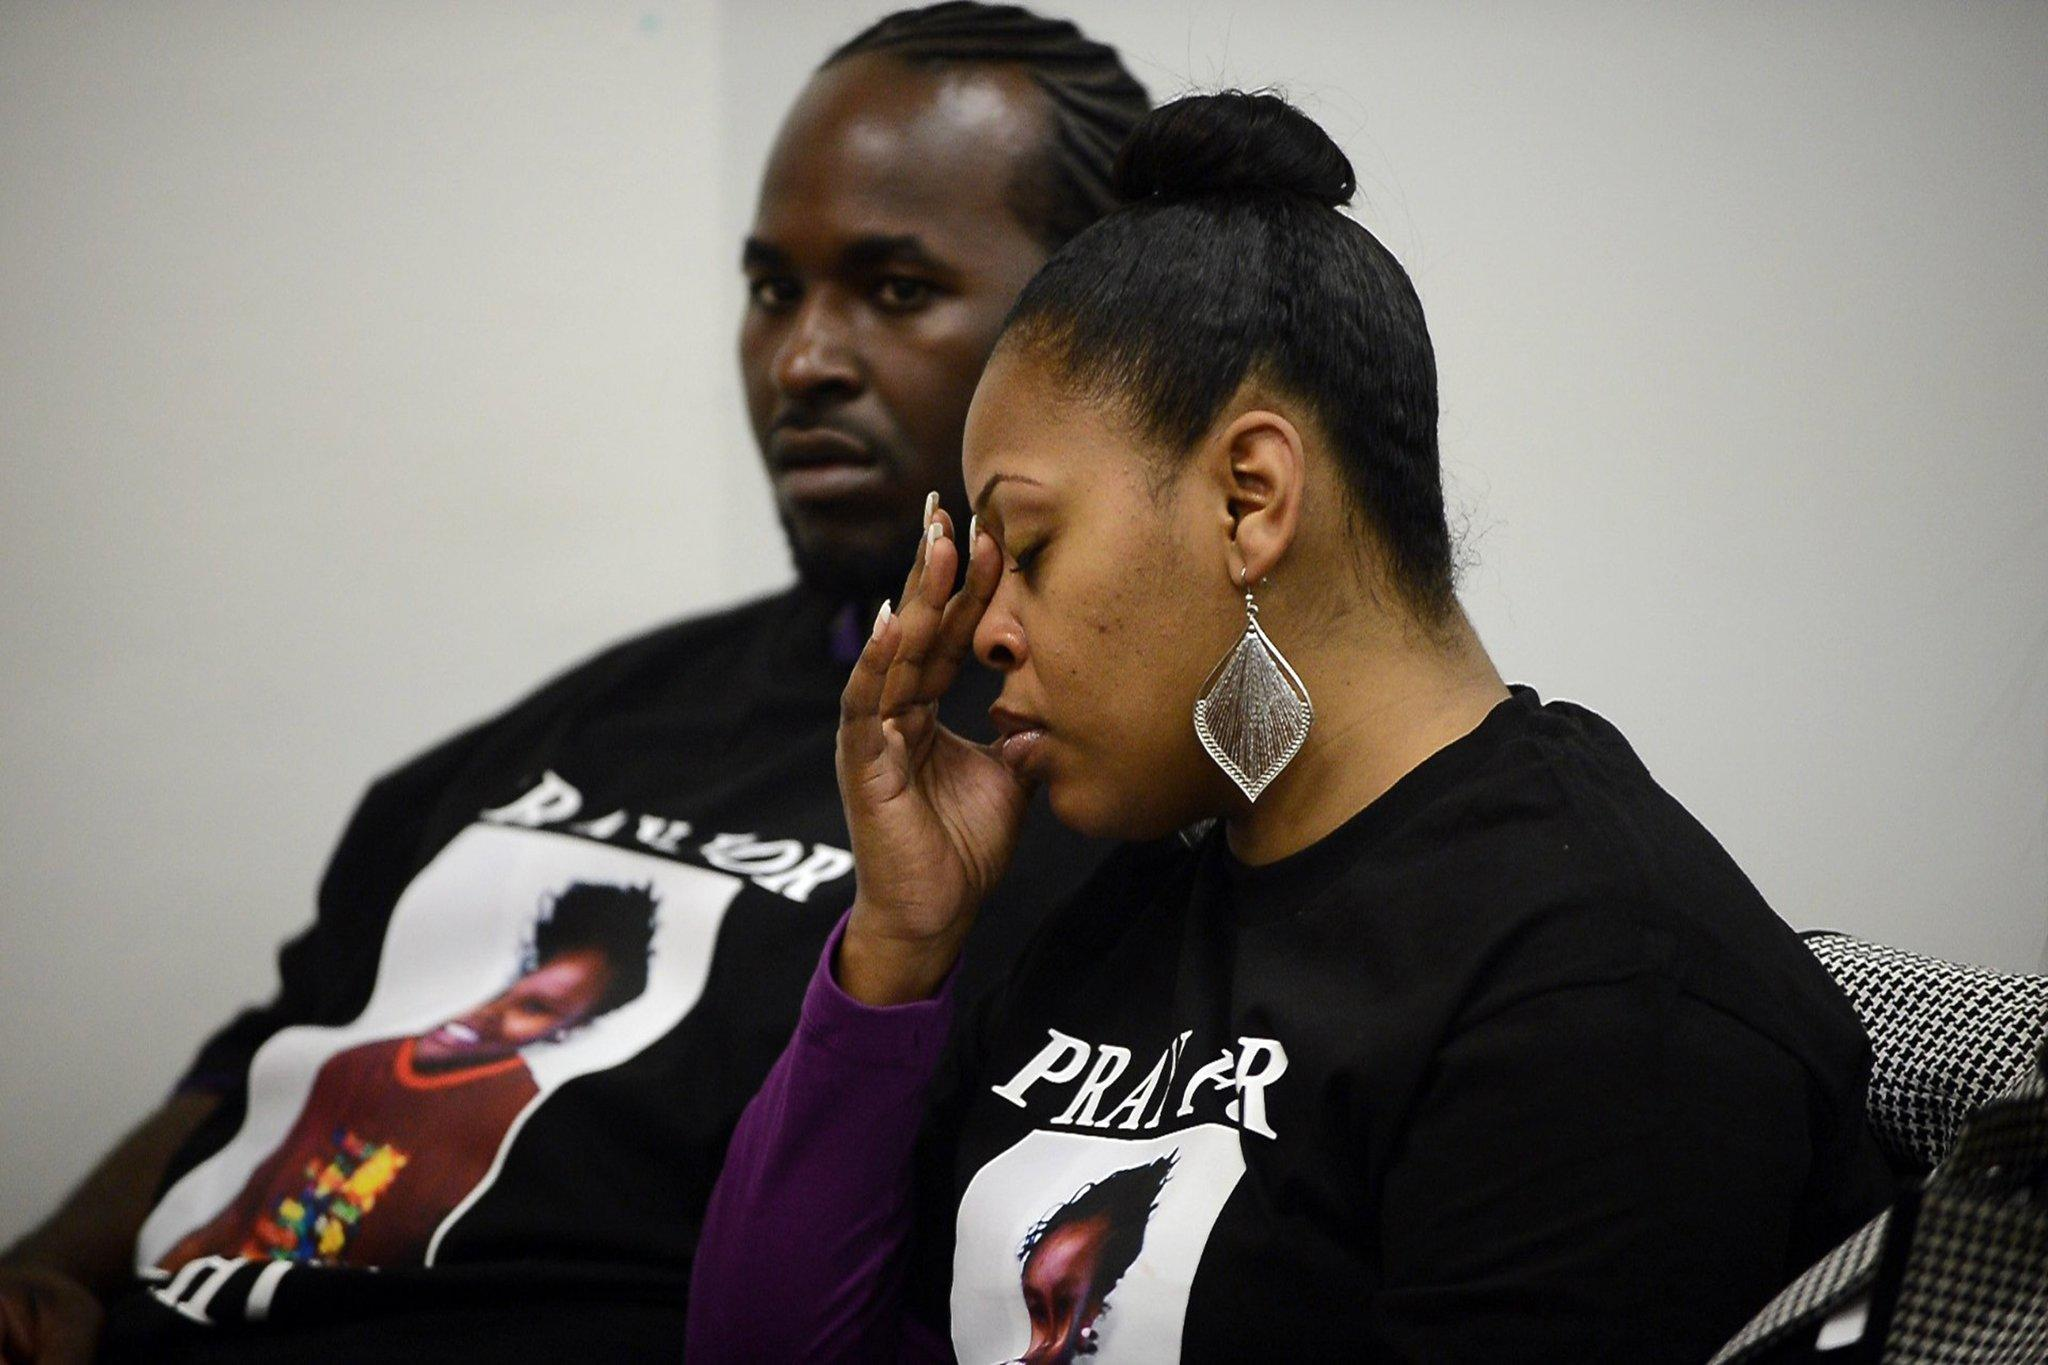 Nailah Winkfield, mother of Jahi McMath, sits with her husband, Martin Winkfield, left, while attending a court hearing to discuss the treatment of 13-year-old daughter Jahi McMath.